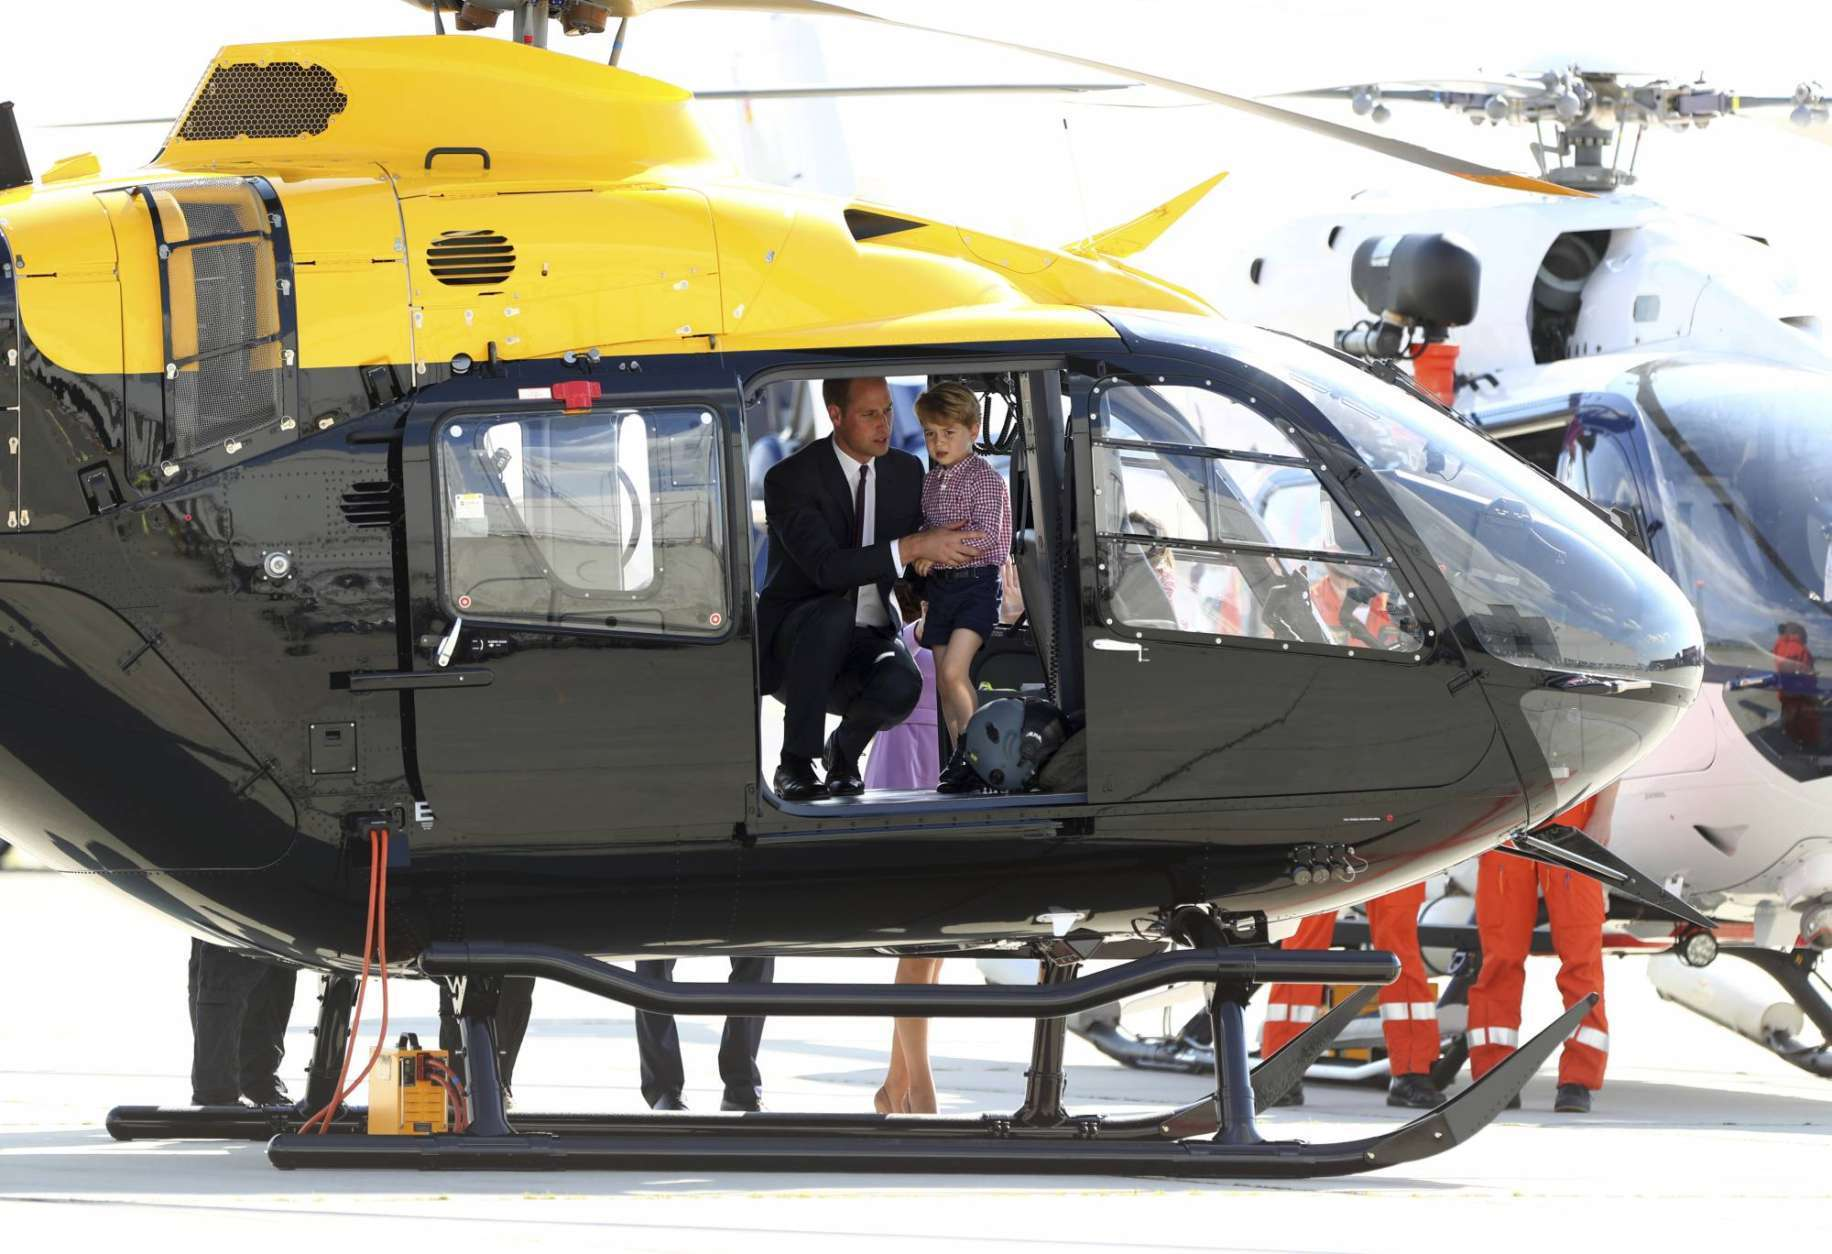 Britain's Prince William looks at the interior of an Airbus helicopter with his son Prince George in Hamburg, Germany,  Friday, July 21, 2017.  (Christian Charisius/dpa via AP)